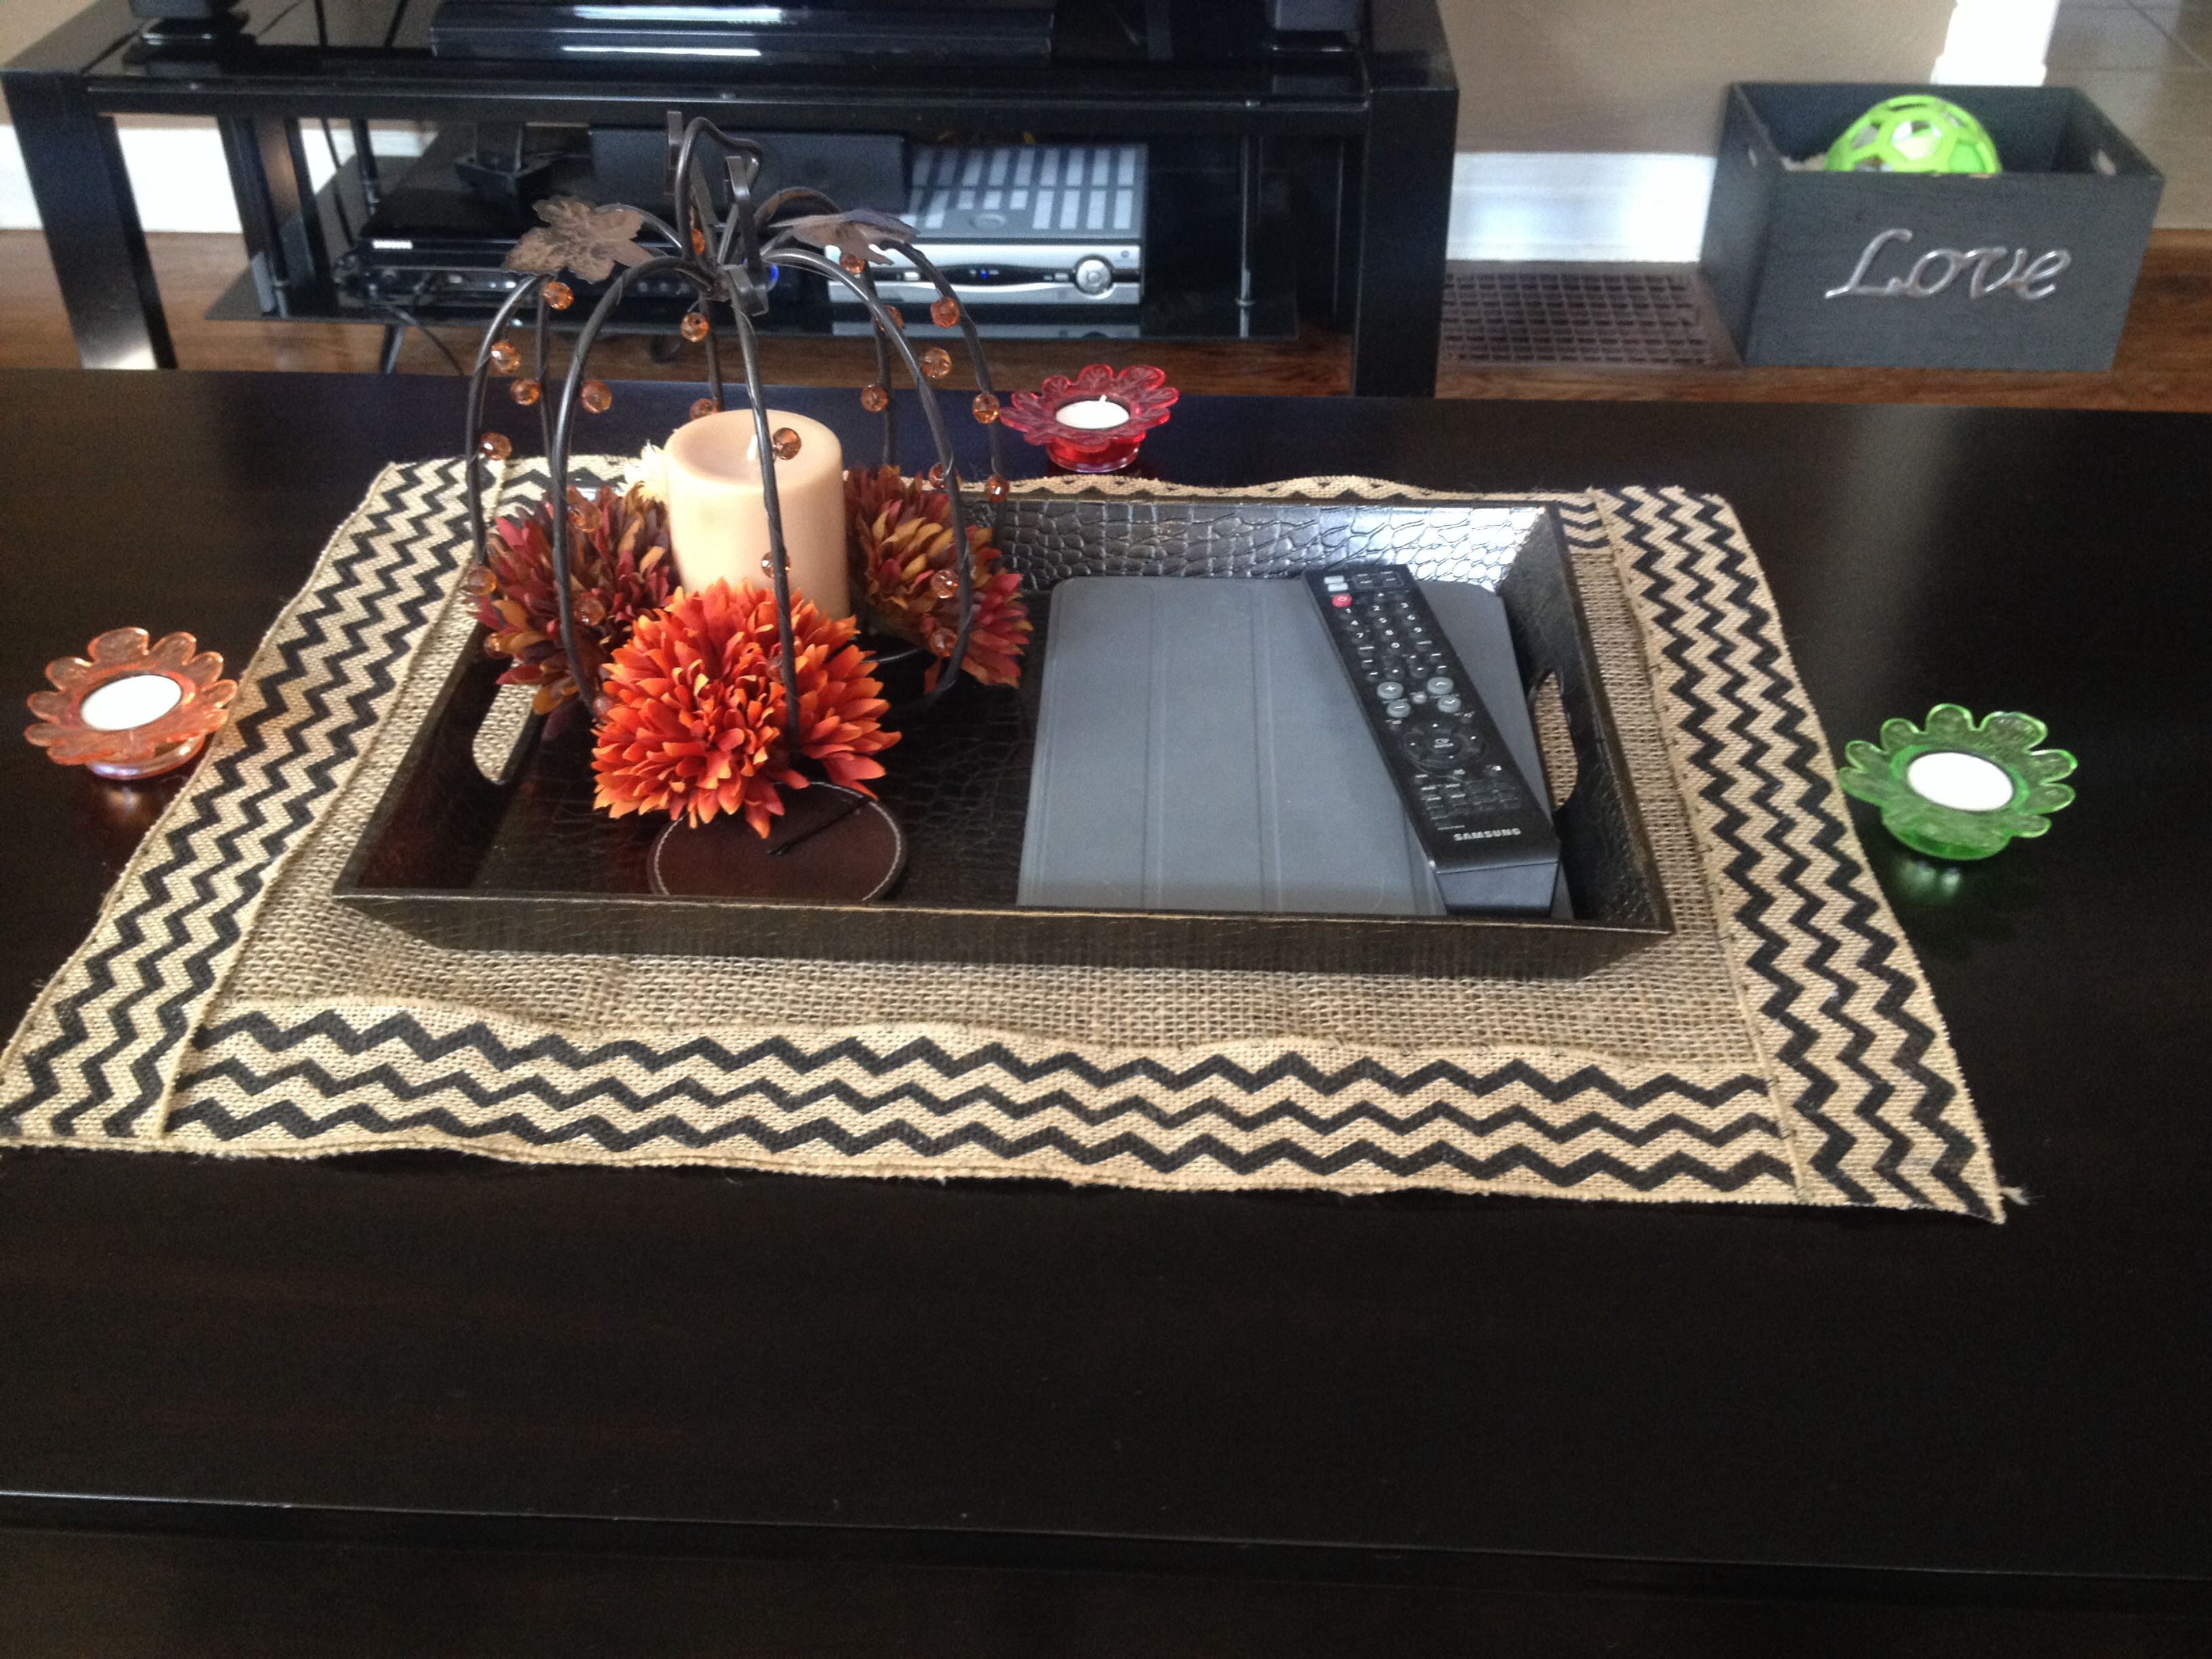 Burlap coffee table runner Use PUL fabric underneath To protect